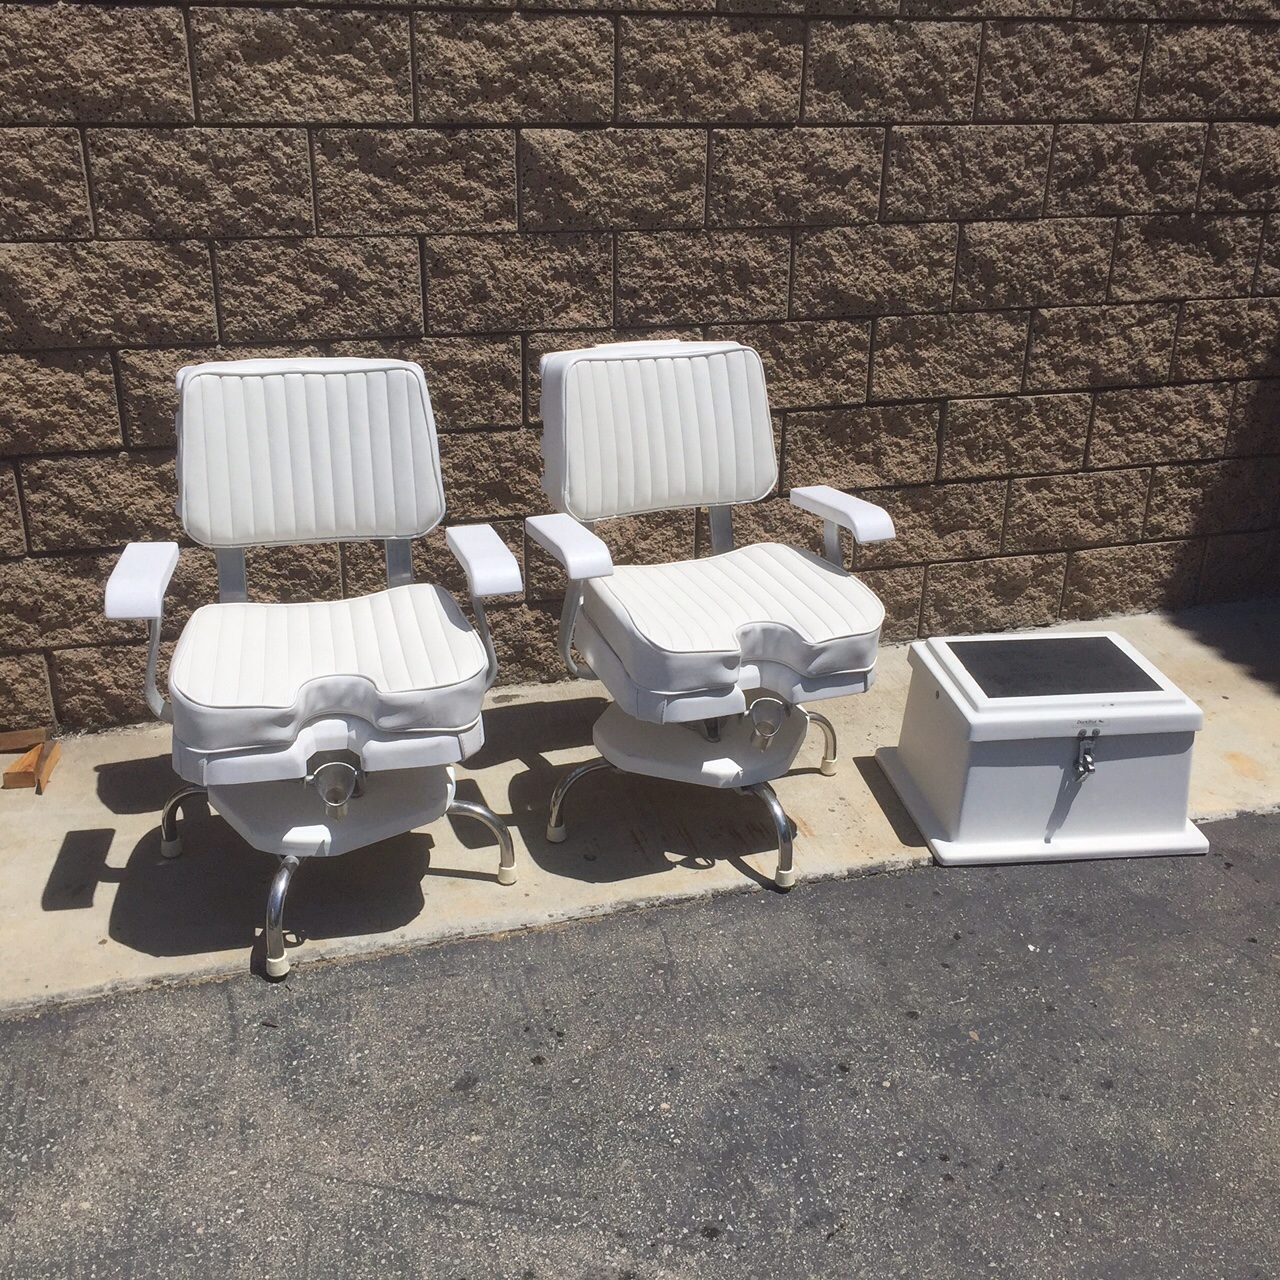 Gentil 2 Portable Pompanette Fighting Chairs Cushions Recently Replaced Both Chairs  In Great Condition Stored Inside $450 Each Or $800 For Both